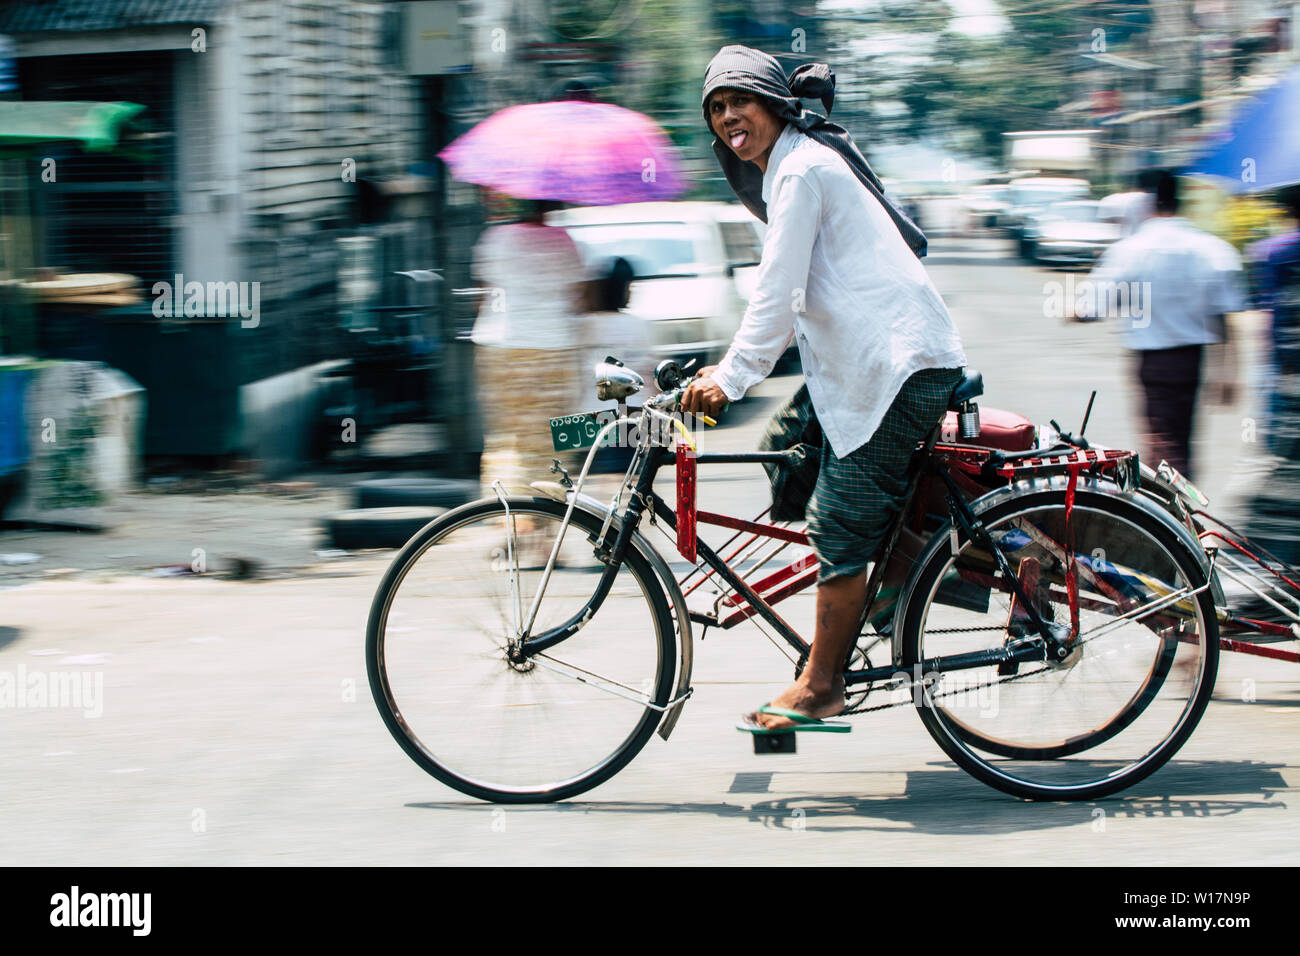 Traditional Indian Bicycle Stock Photos & Traditional Indian